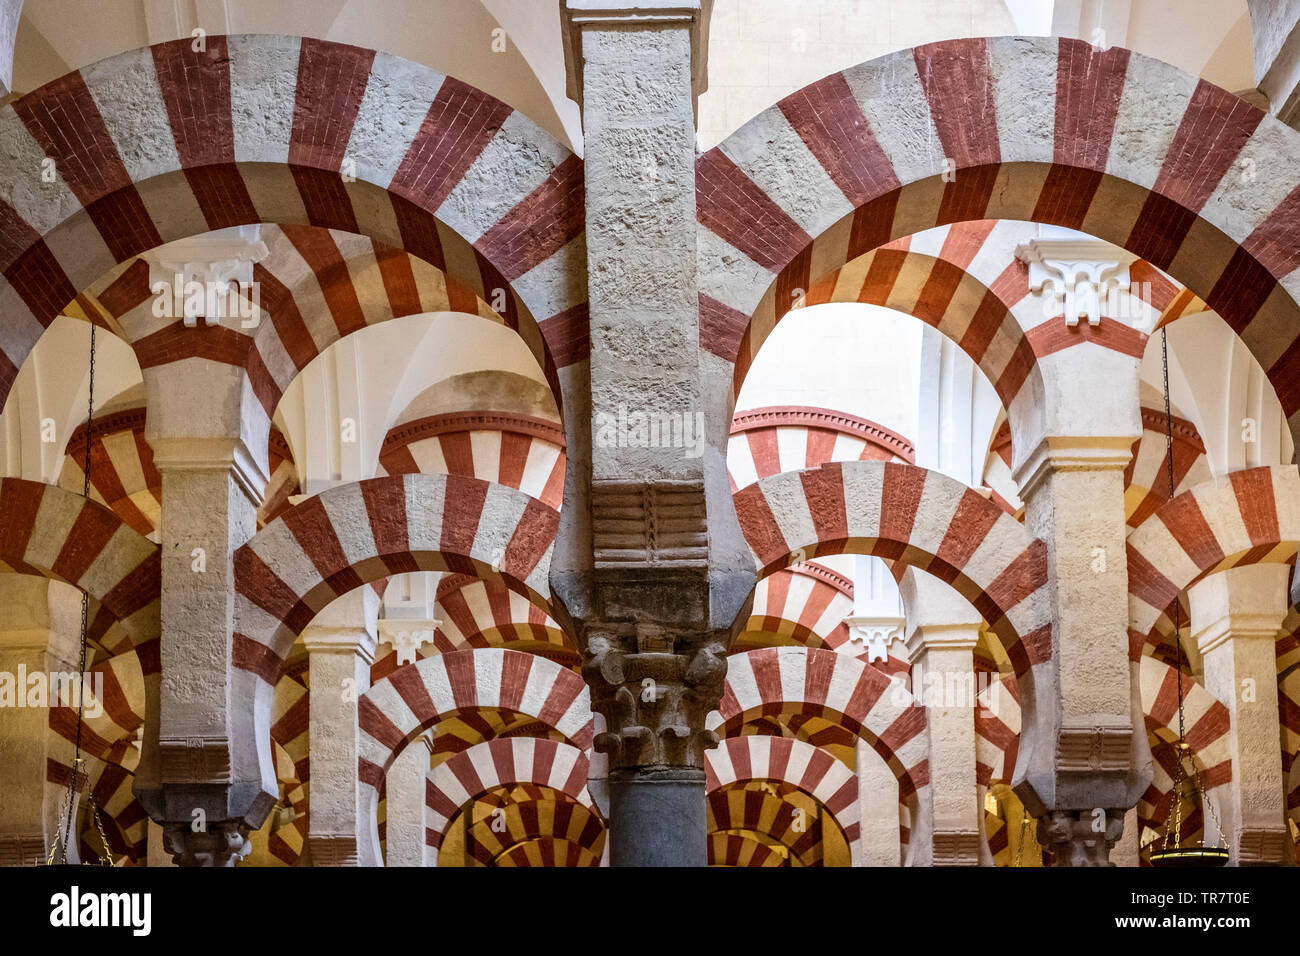 Red And White Striped Double Arches That Support The Roof Of The Mezquita Old Mosque Cordoba Spain Stock Photo Alamy